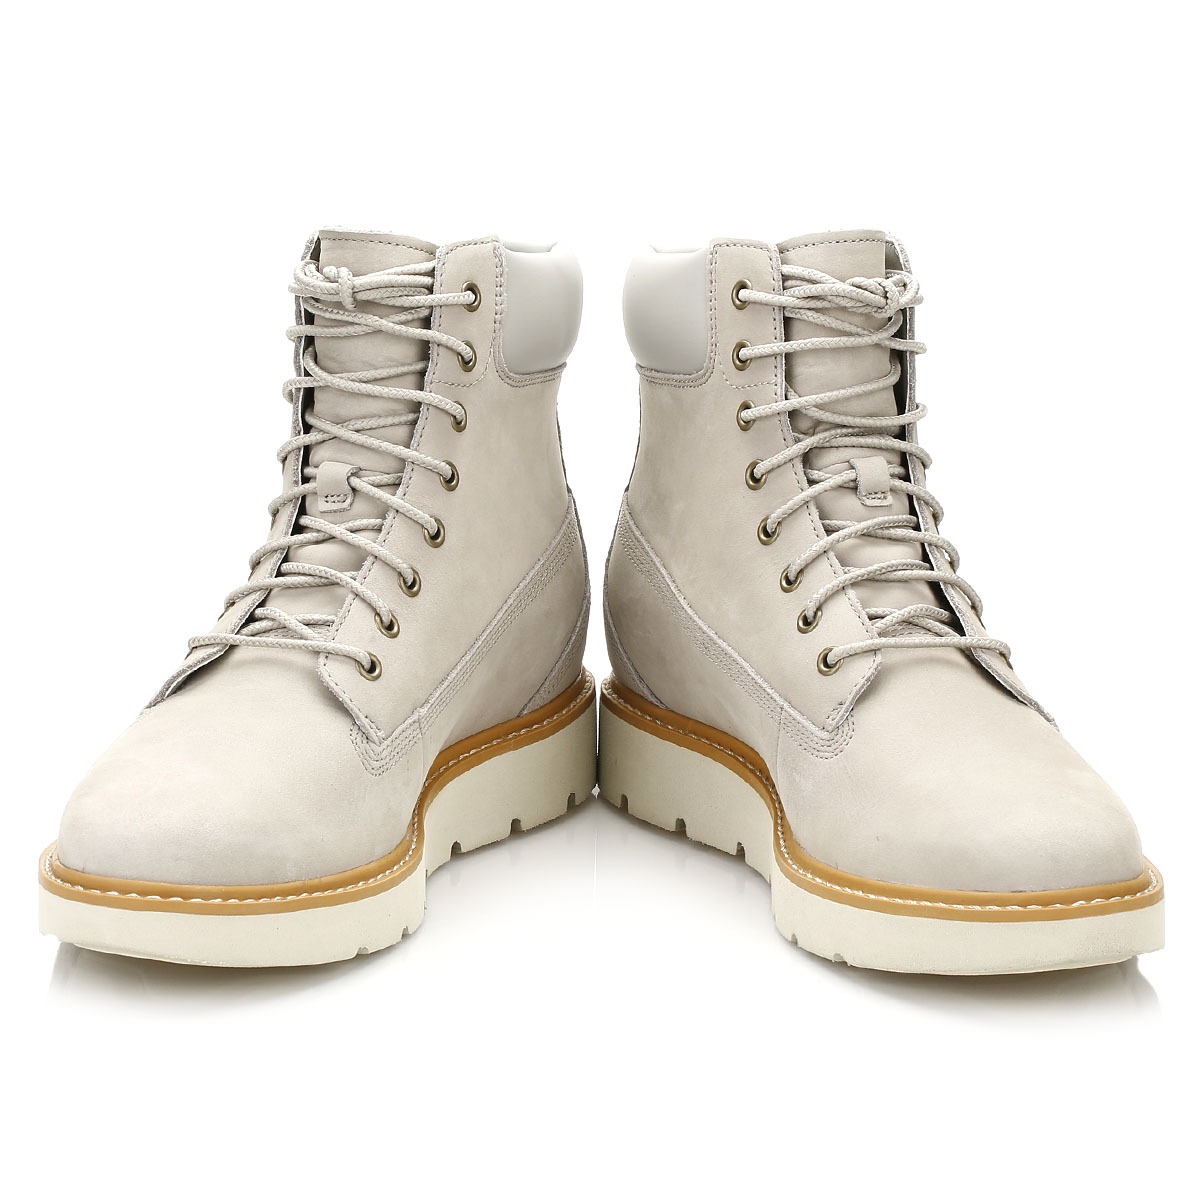 769999d76c76 Timberland-Womens-Kenniston-Ankle-Boots-Casual-Lace-Up-